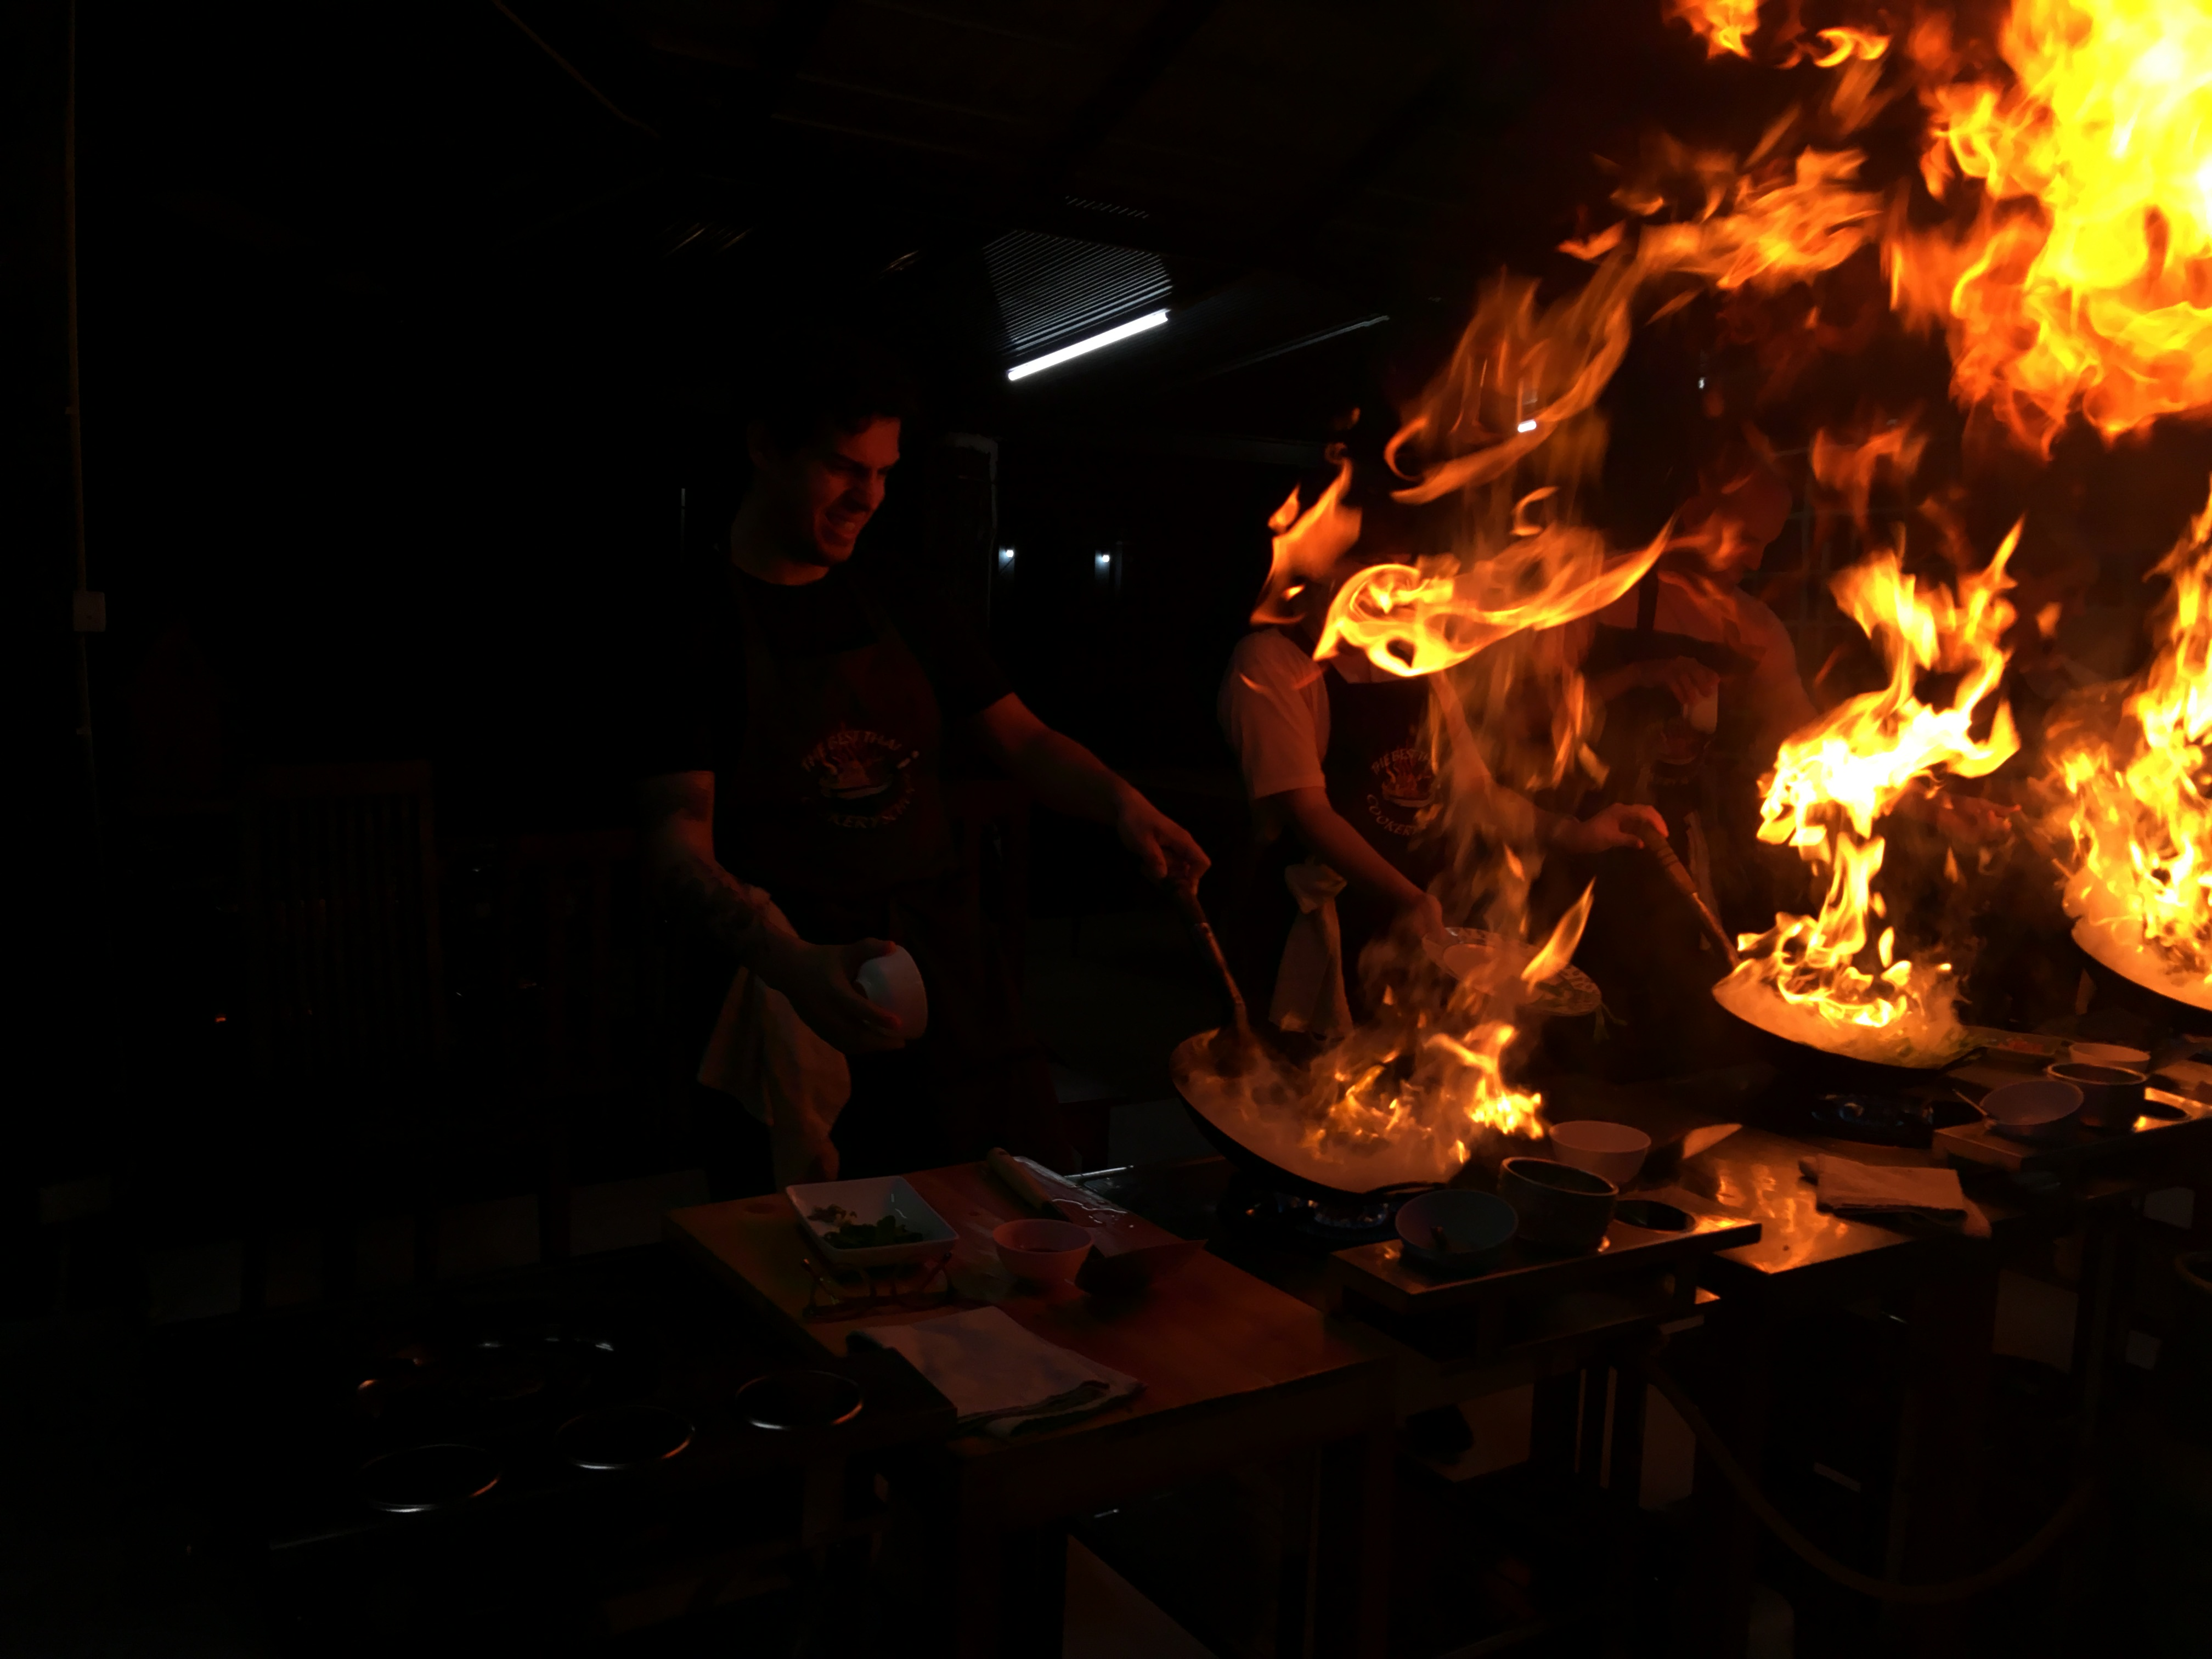 Me cooking with fire!